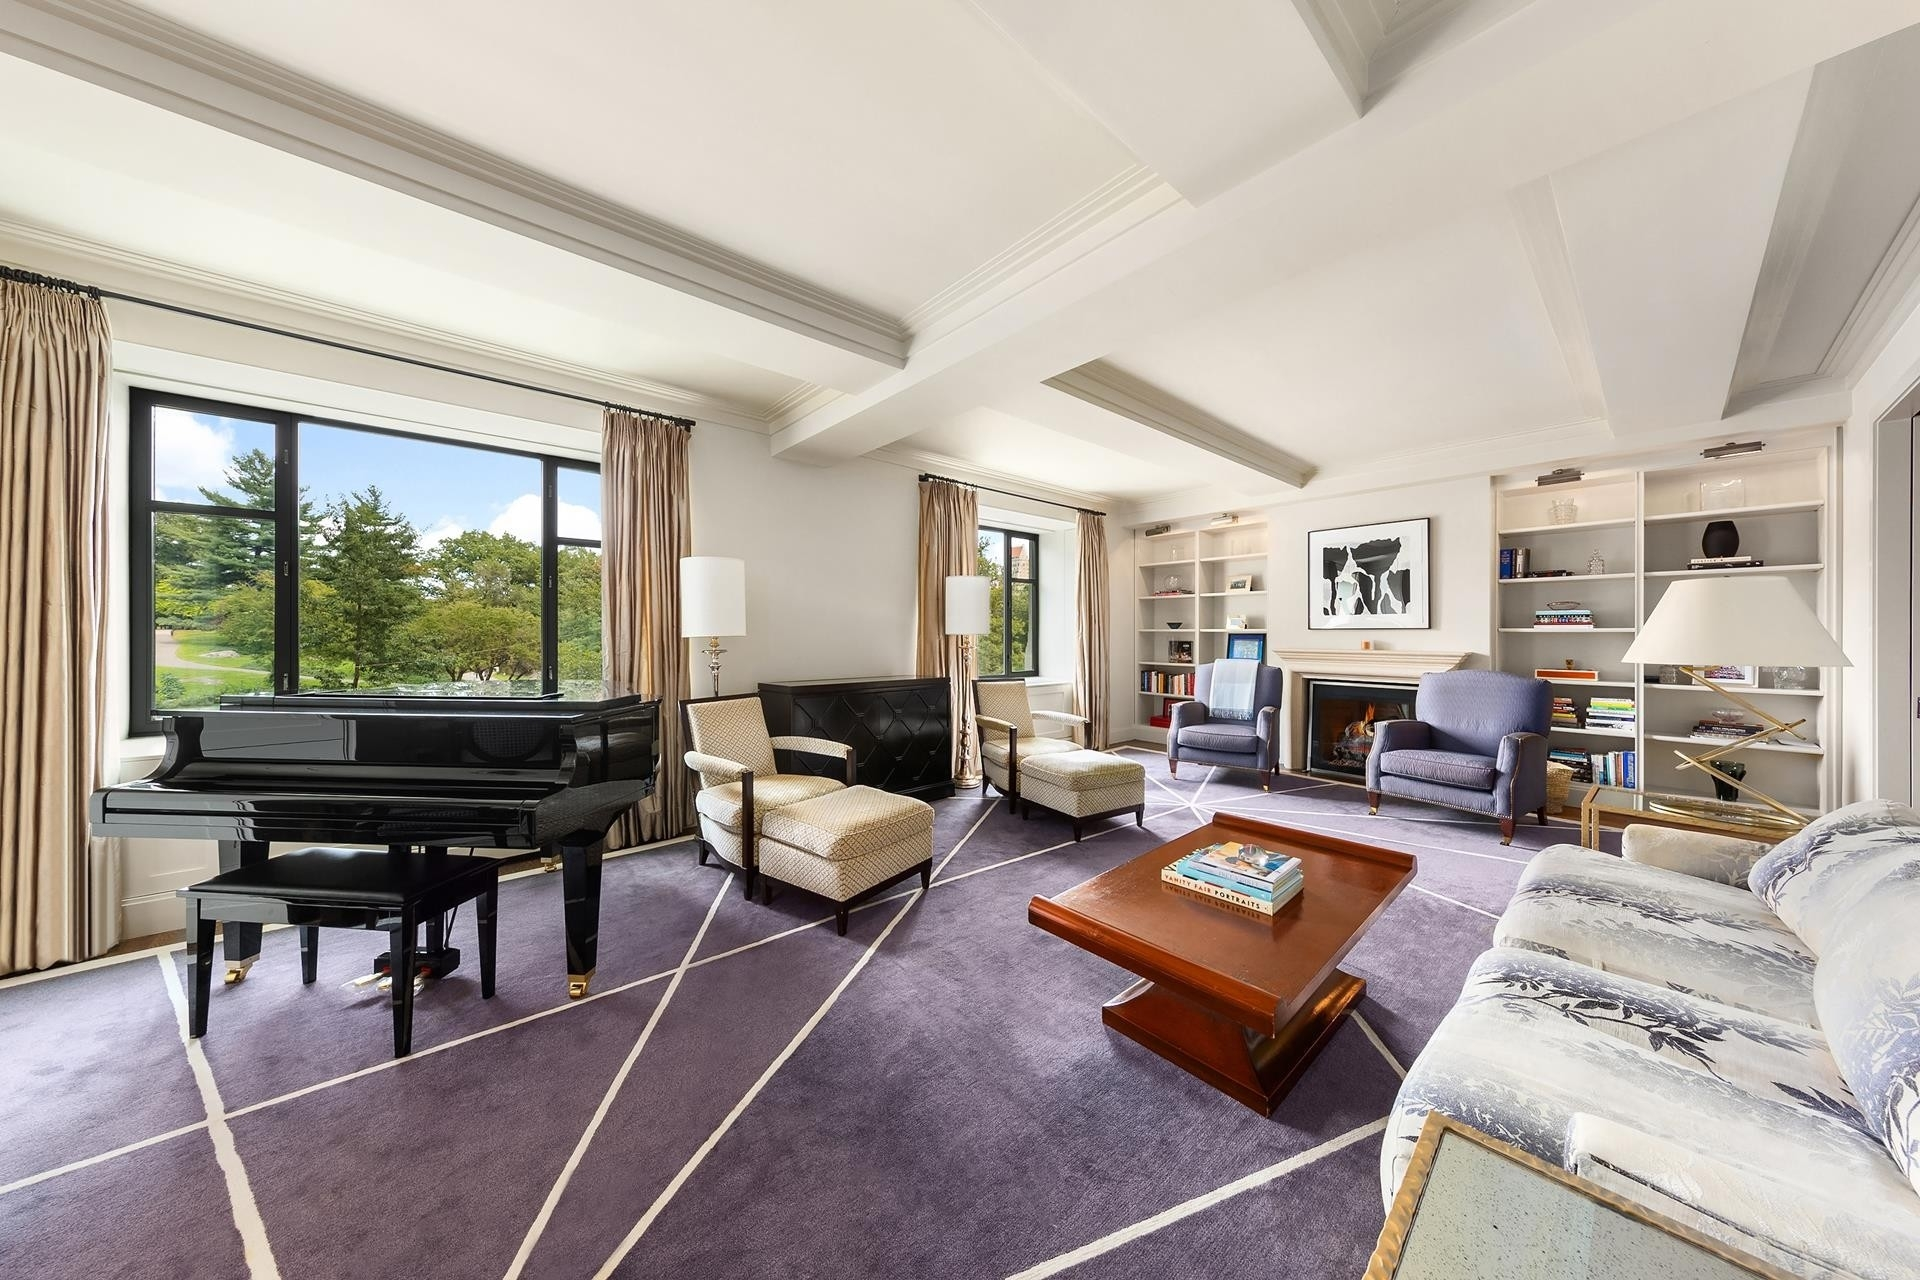 Co-op / Condo for Sale at 110 CENTRAL PARK S, 3B/2E Central Park South, New York, NY 10019